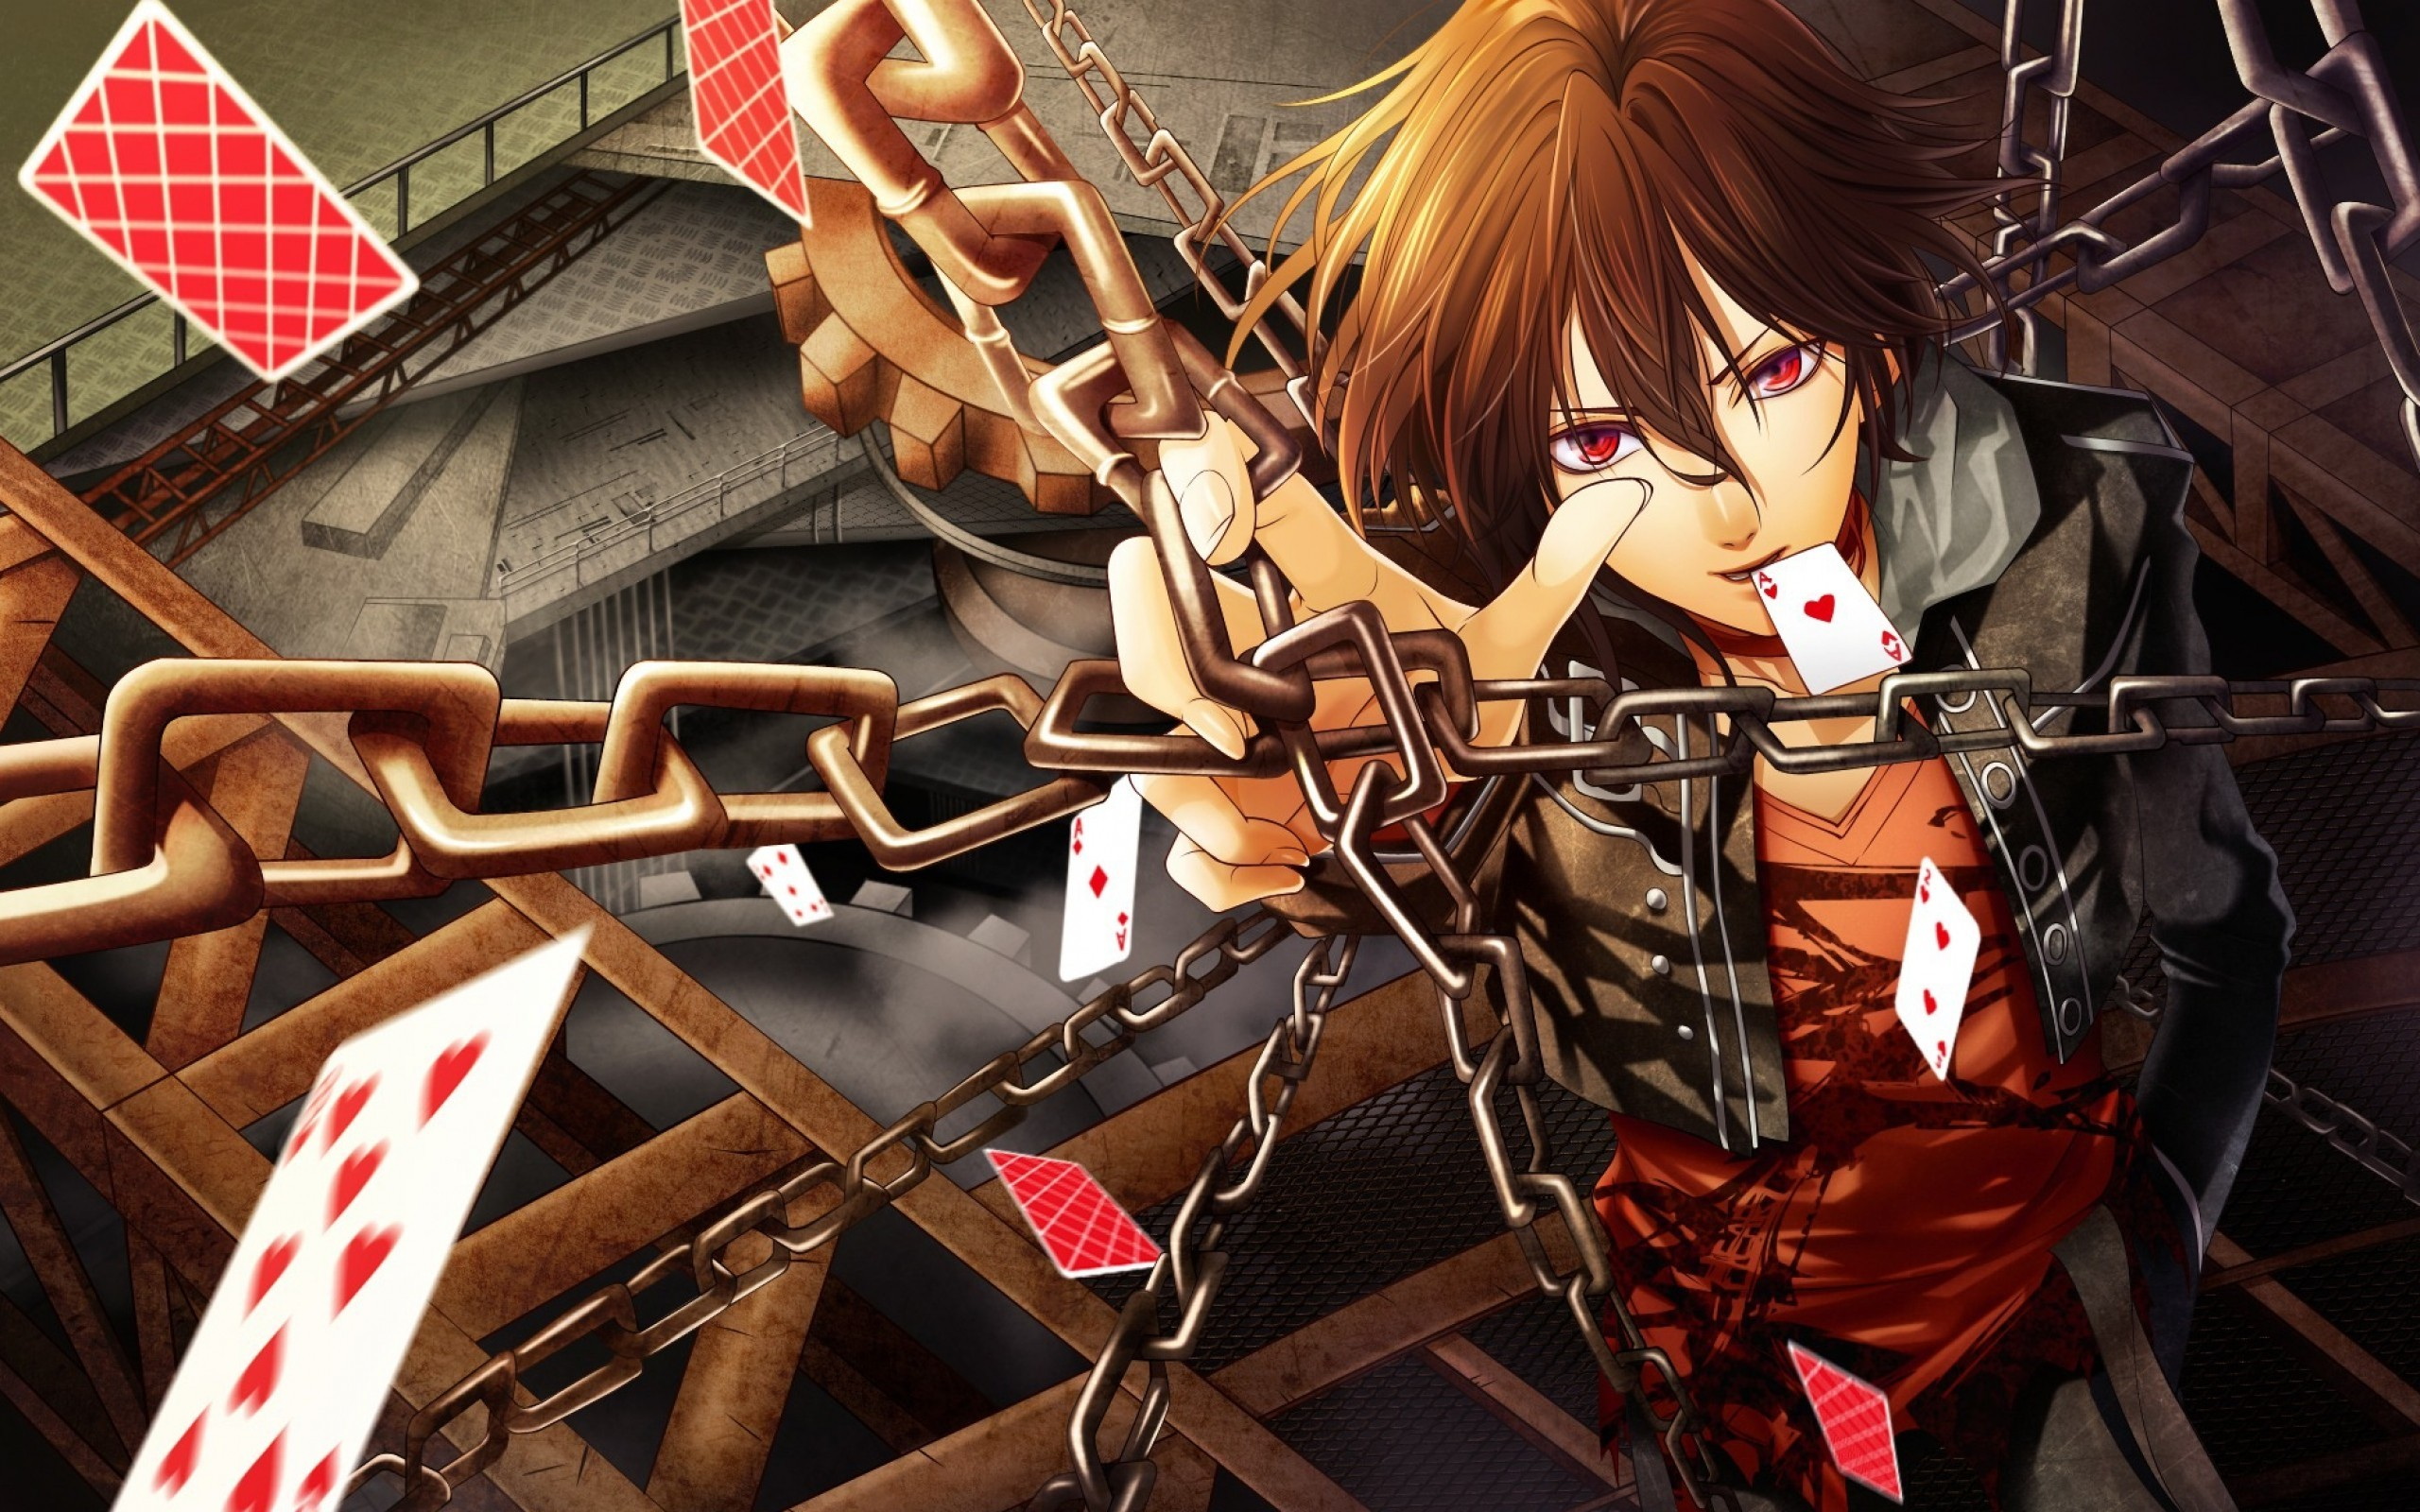 … High Quality Anime Boy Wallpaper Full HD Pictures